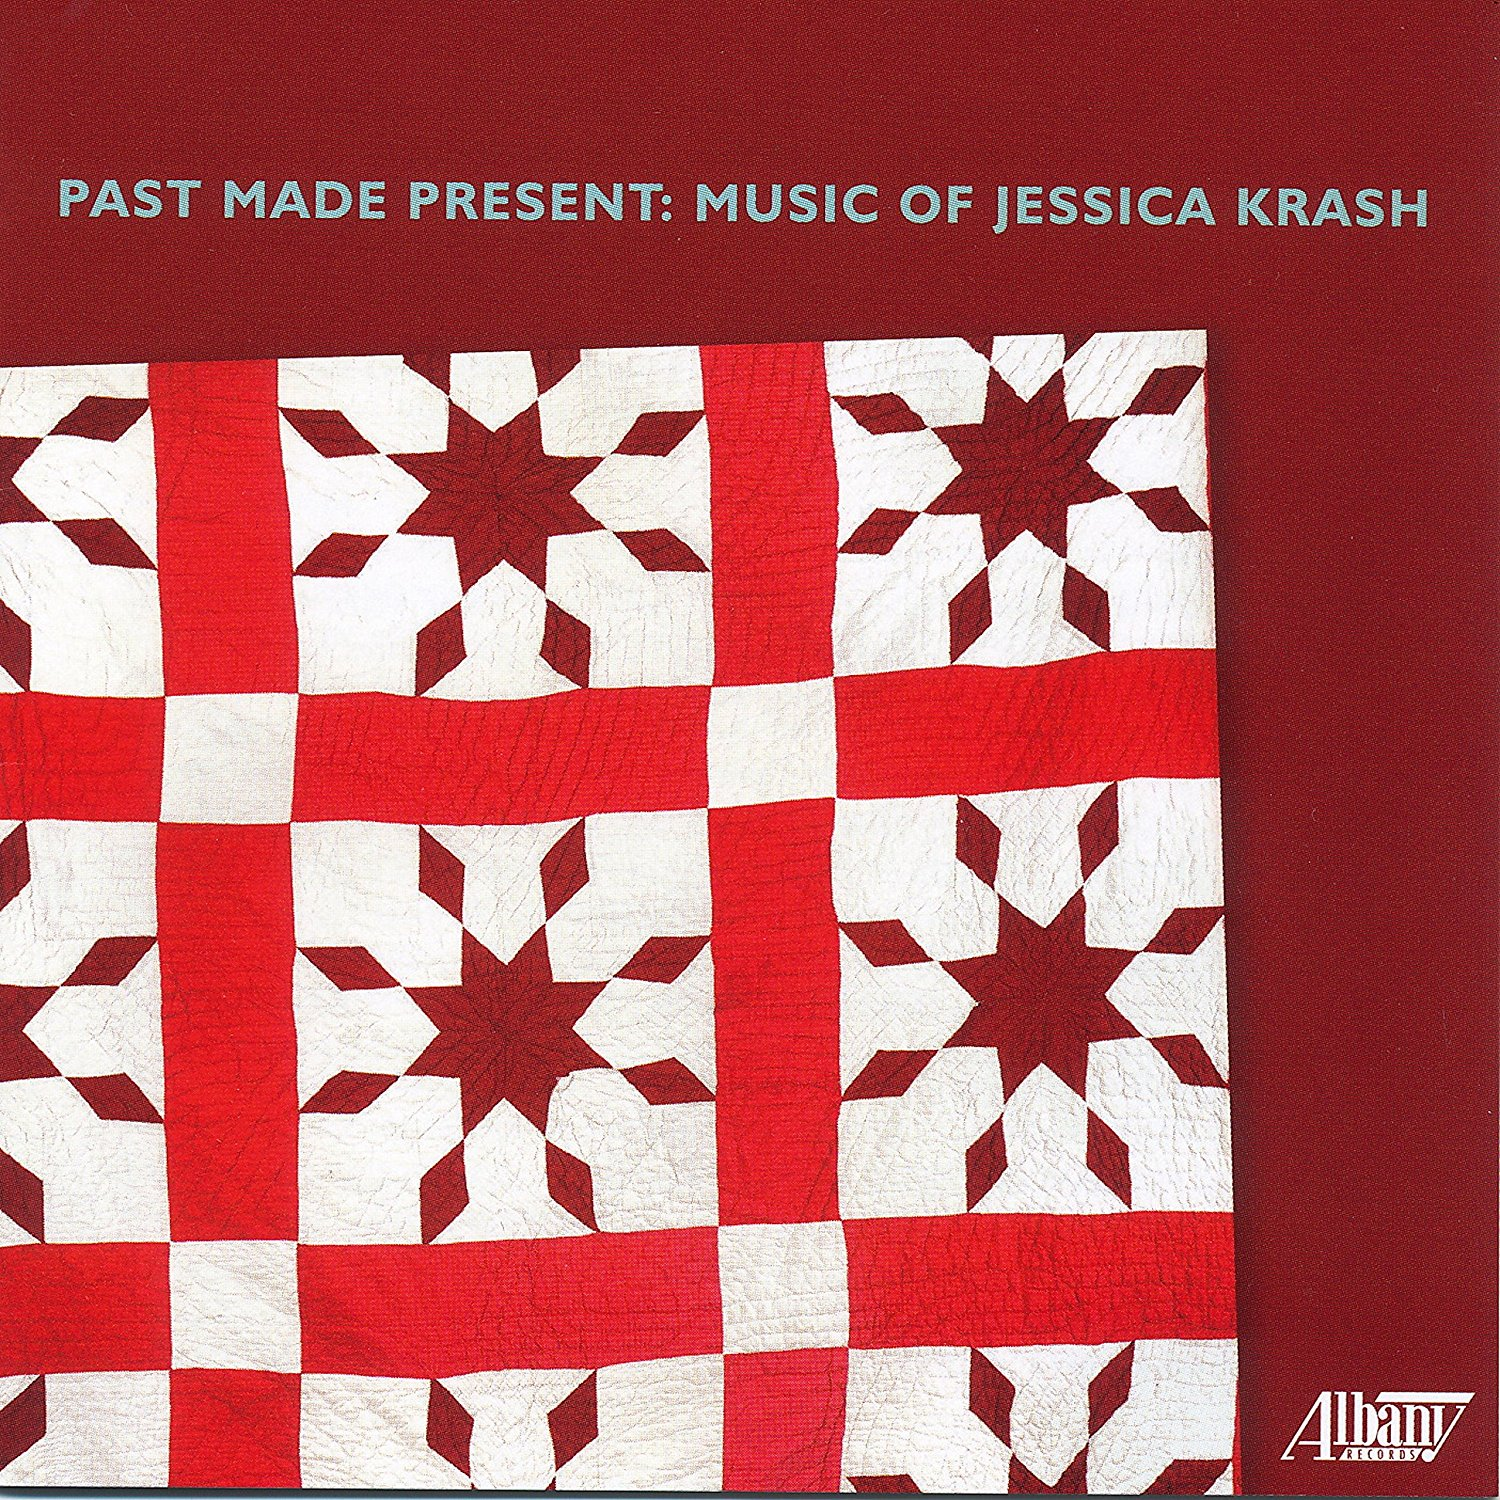 April 2018 RECORDING OF THE MONTH: Jessica Krash - PAST MADE PRESENT (Albany Records TROY1716)